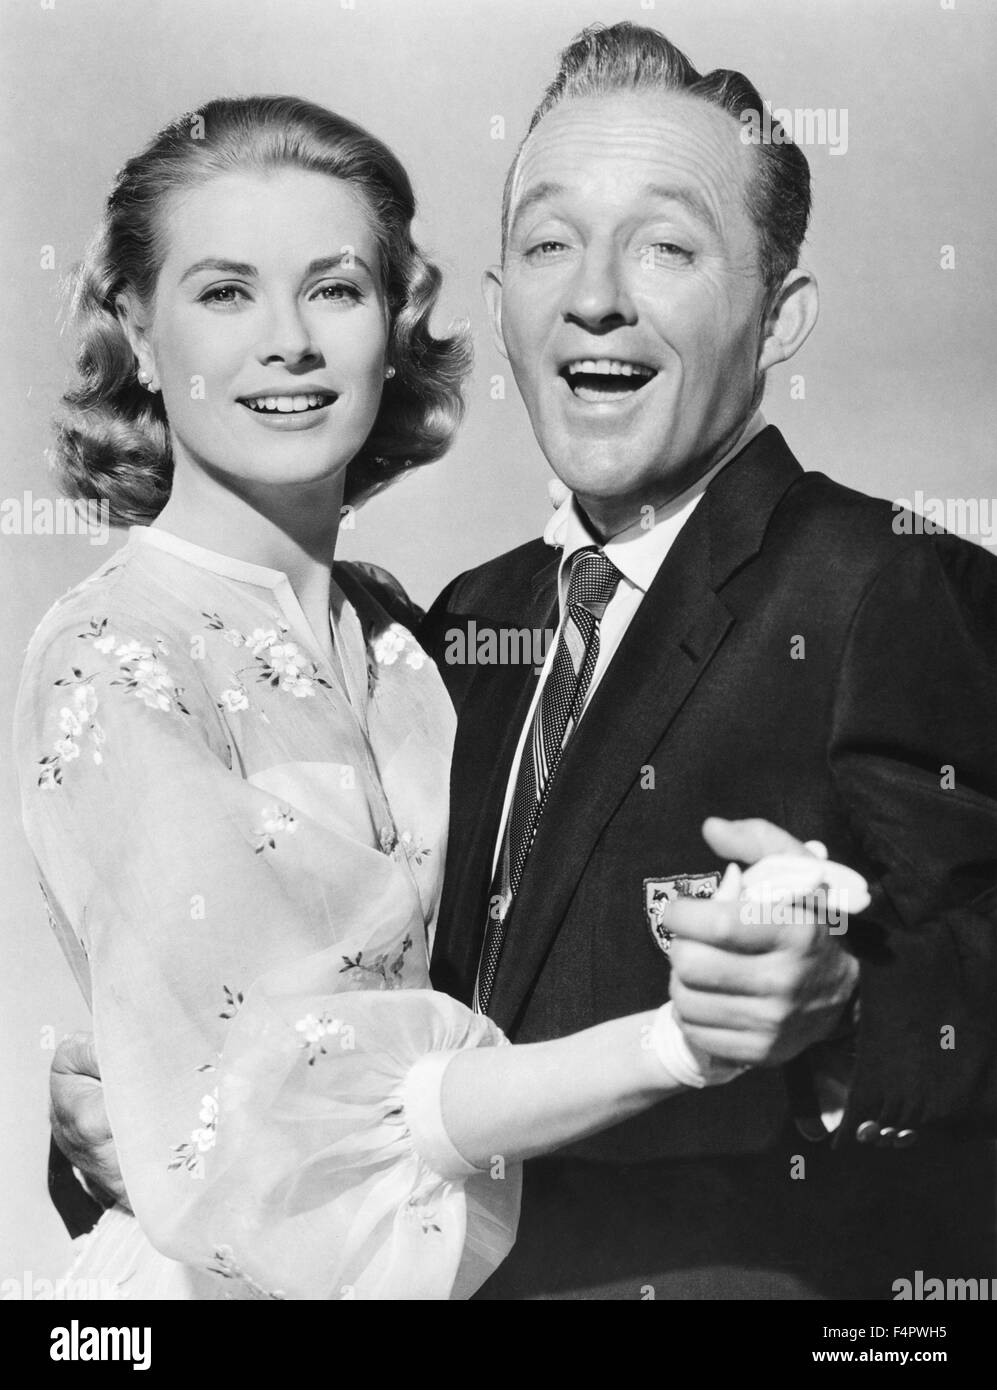 Grace Kelly and Bing Crosby / High Society / 1956 directed by Charles Walters [Metro-Goldwin-Mayer Pictures] - Stock Image